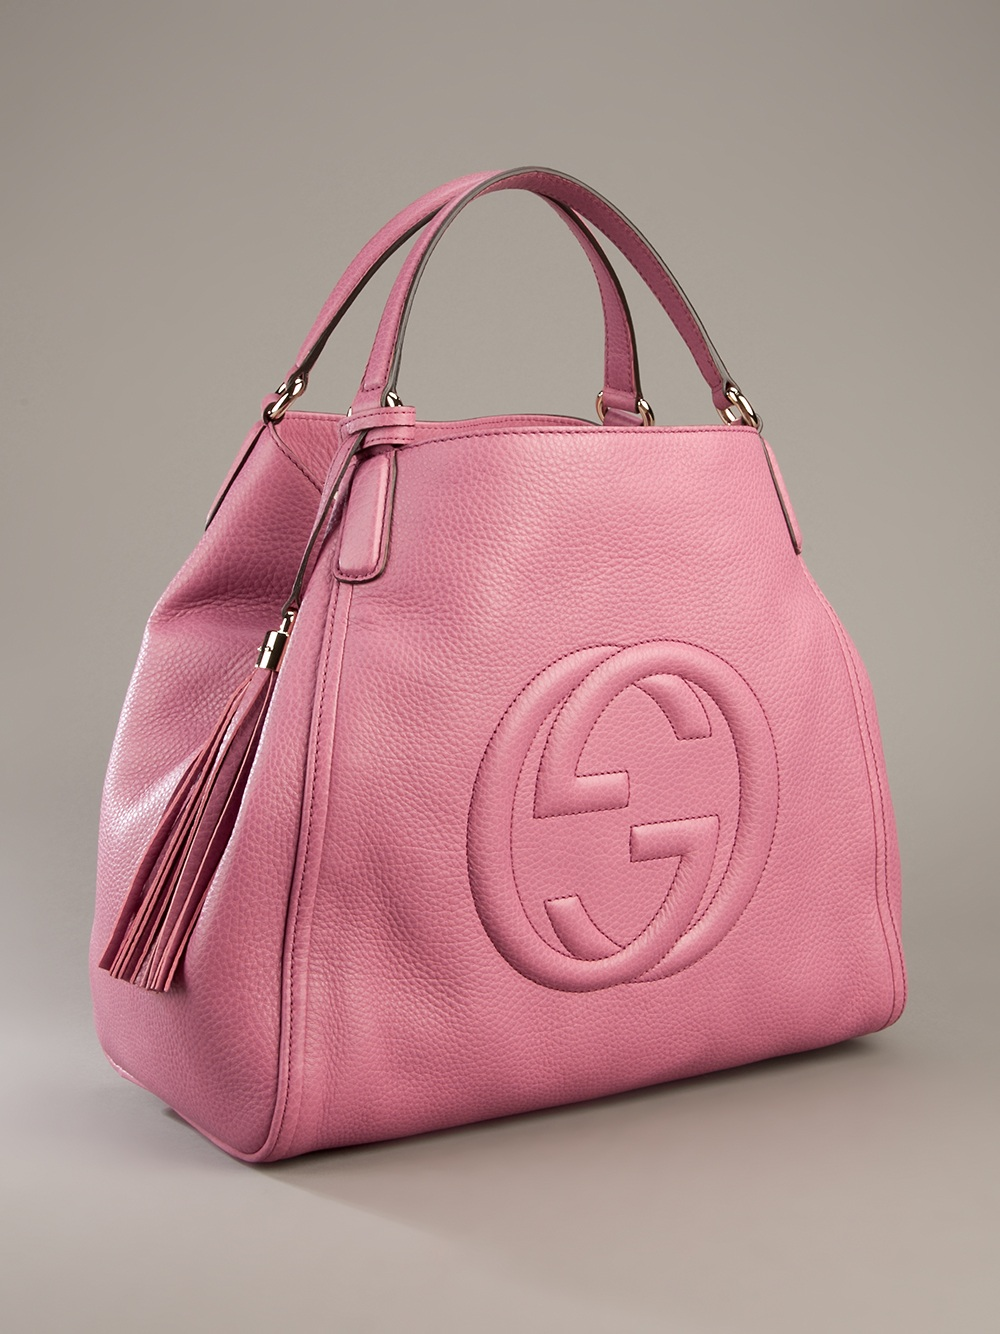 Gucci Soho Large Sized Bag in Pink | Lyst